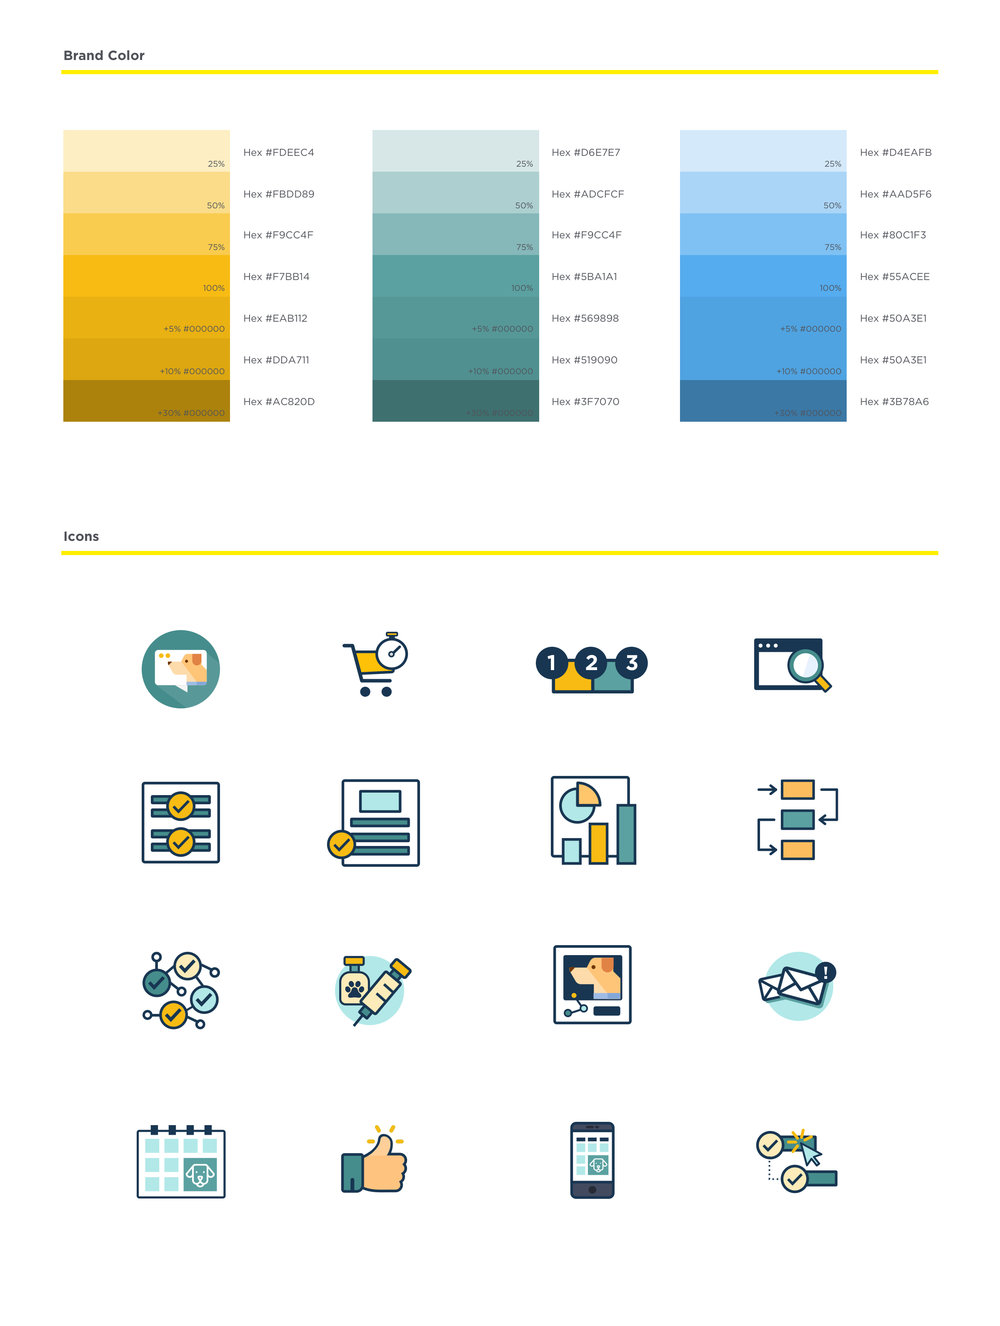 styleguide_color@2x.jpg